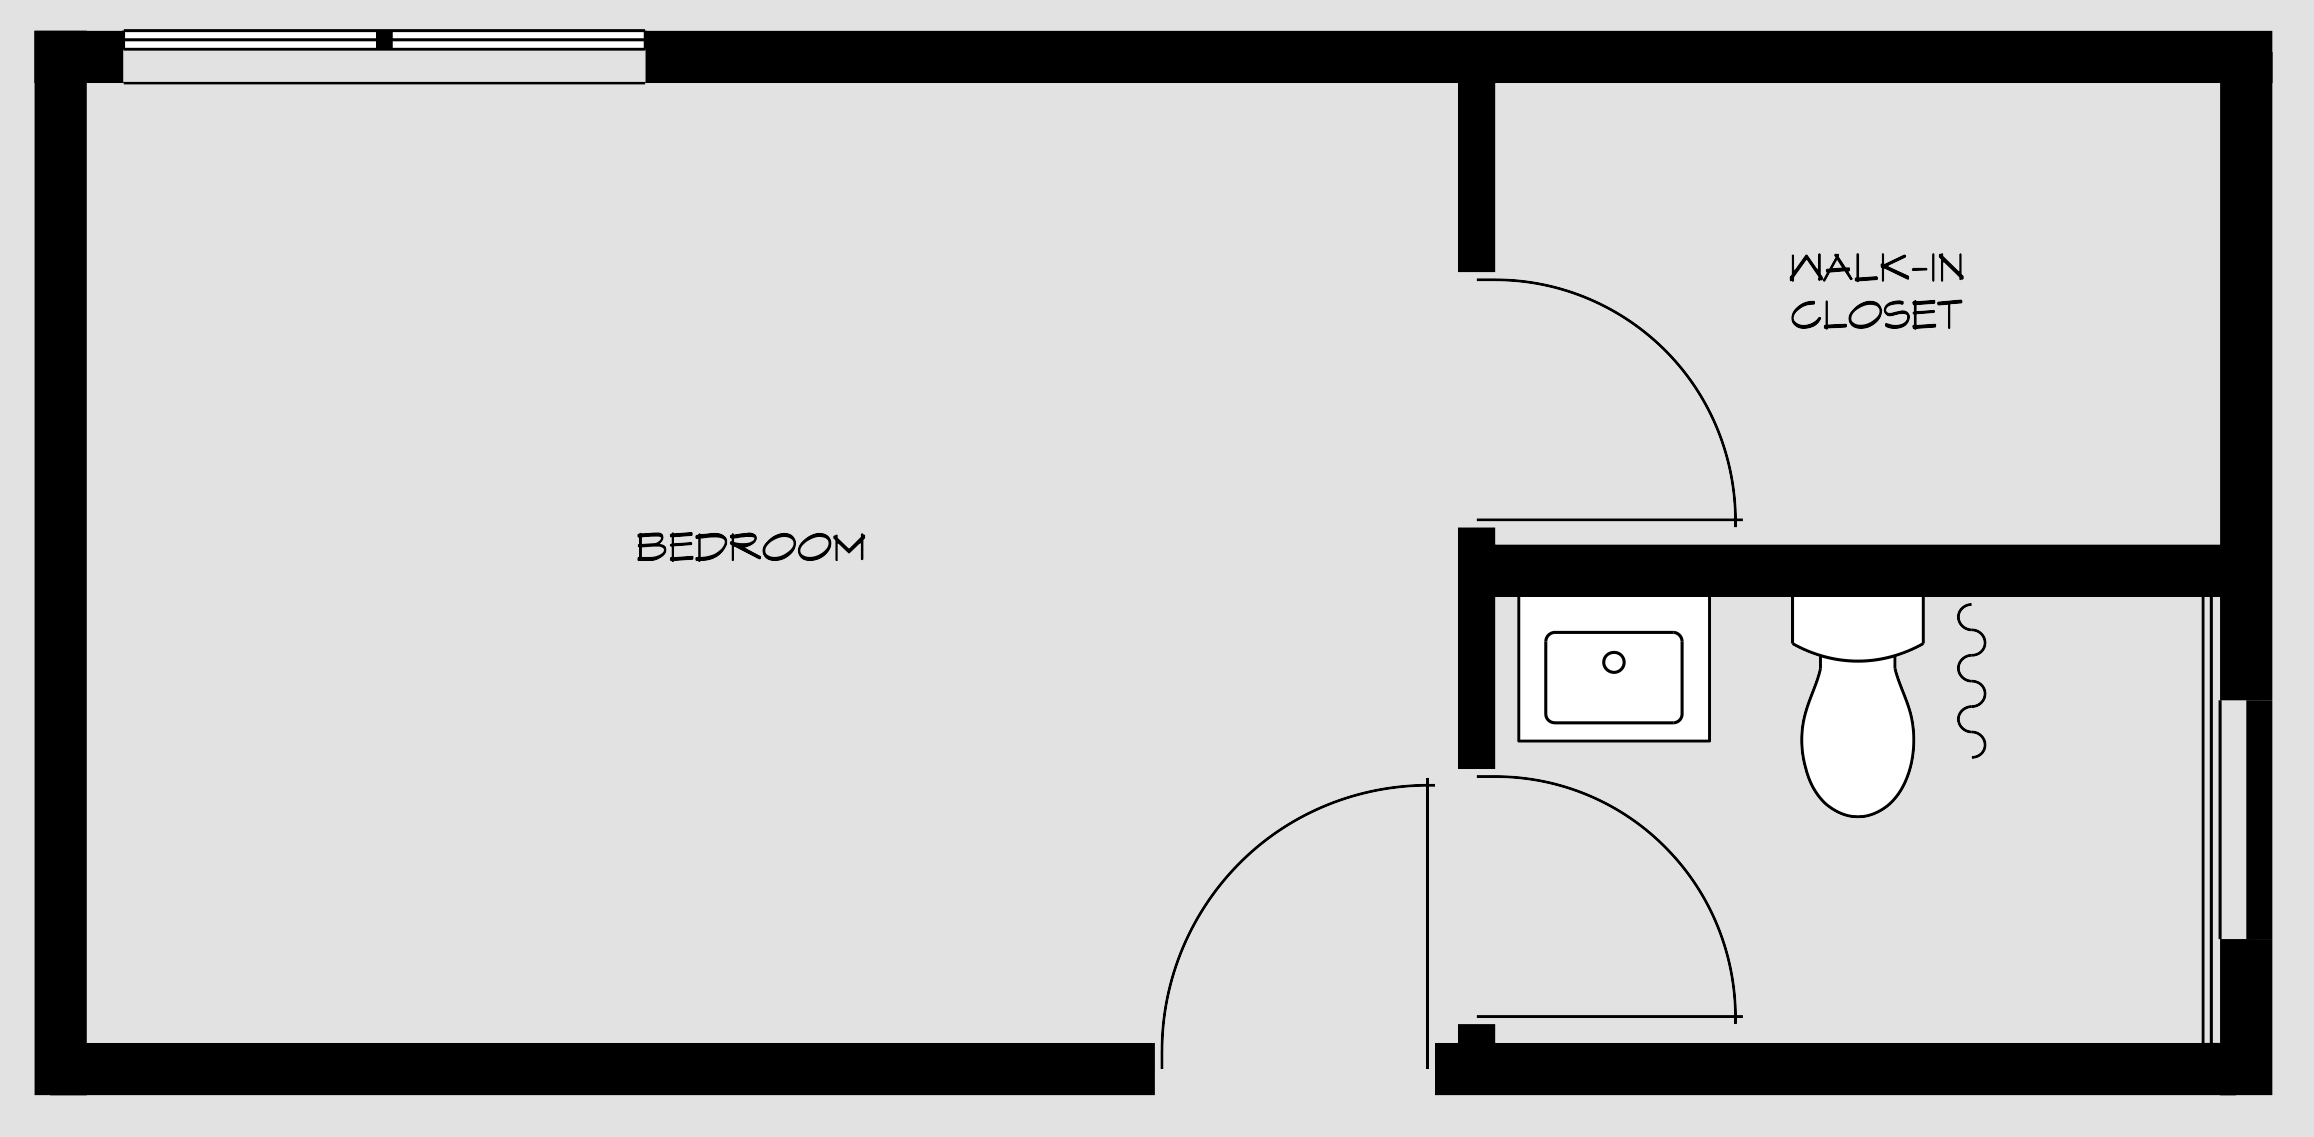 floorpan for bedroom 4